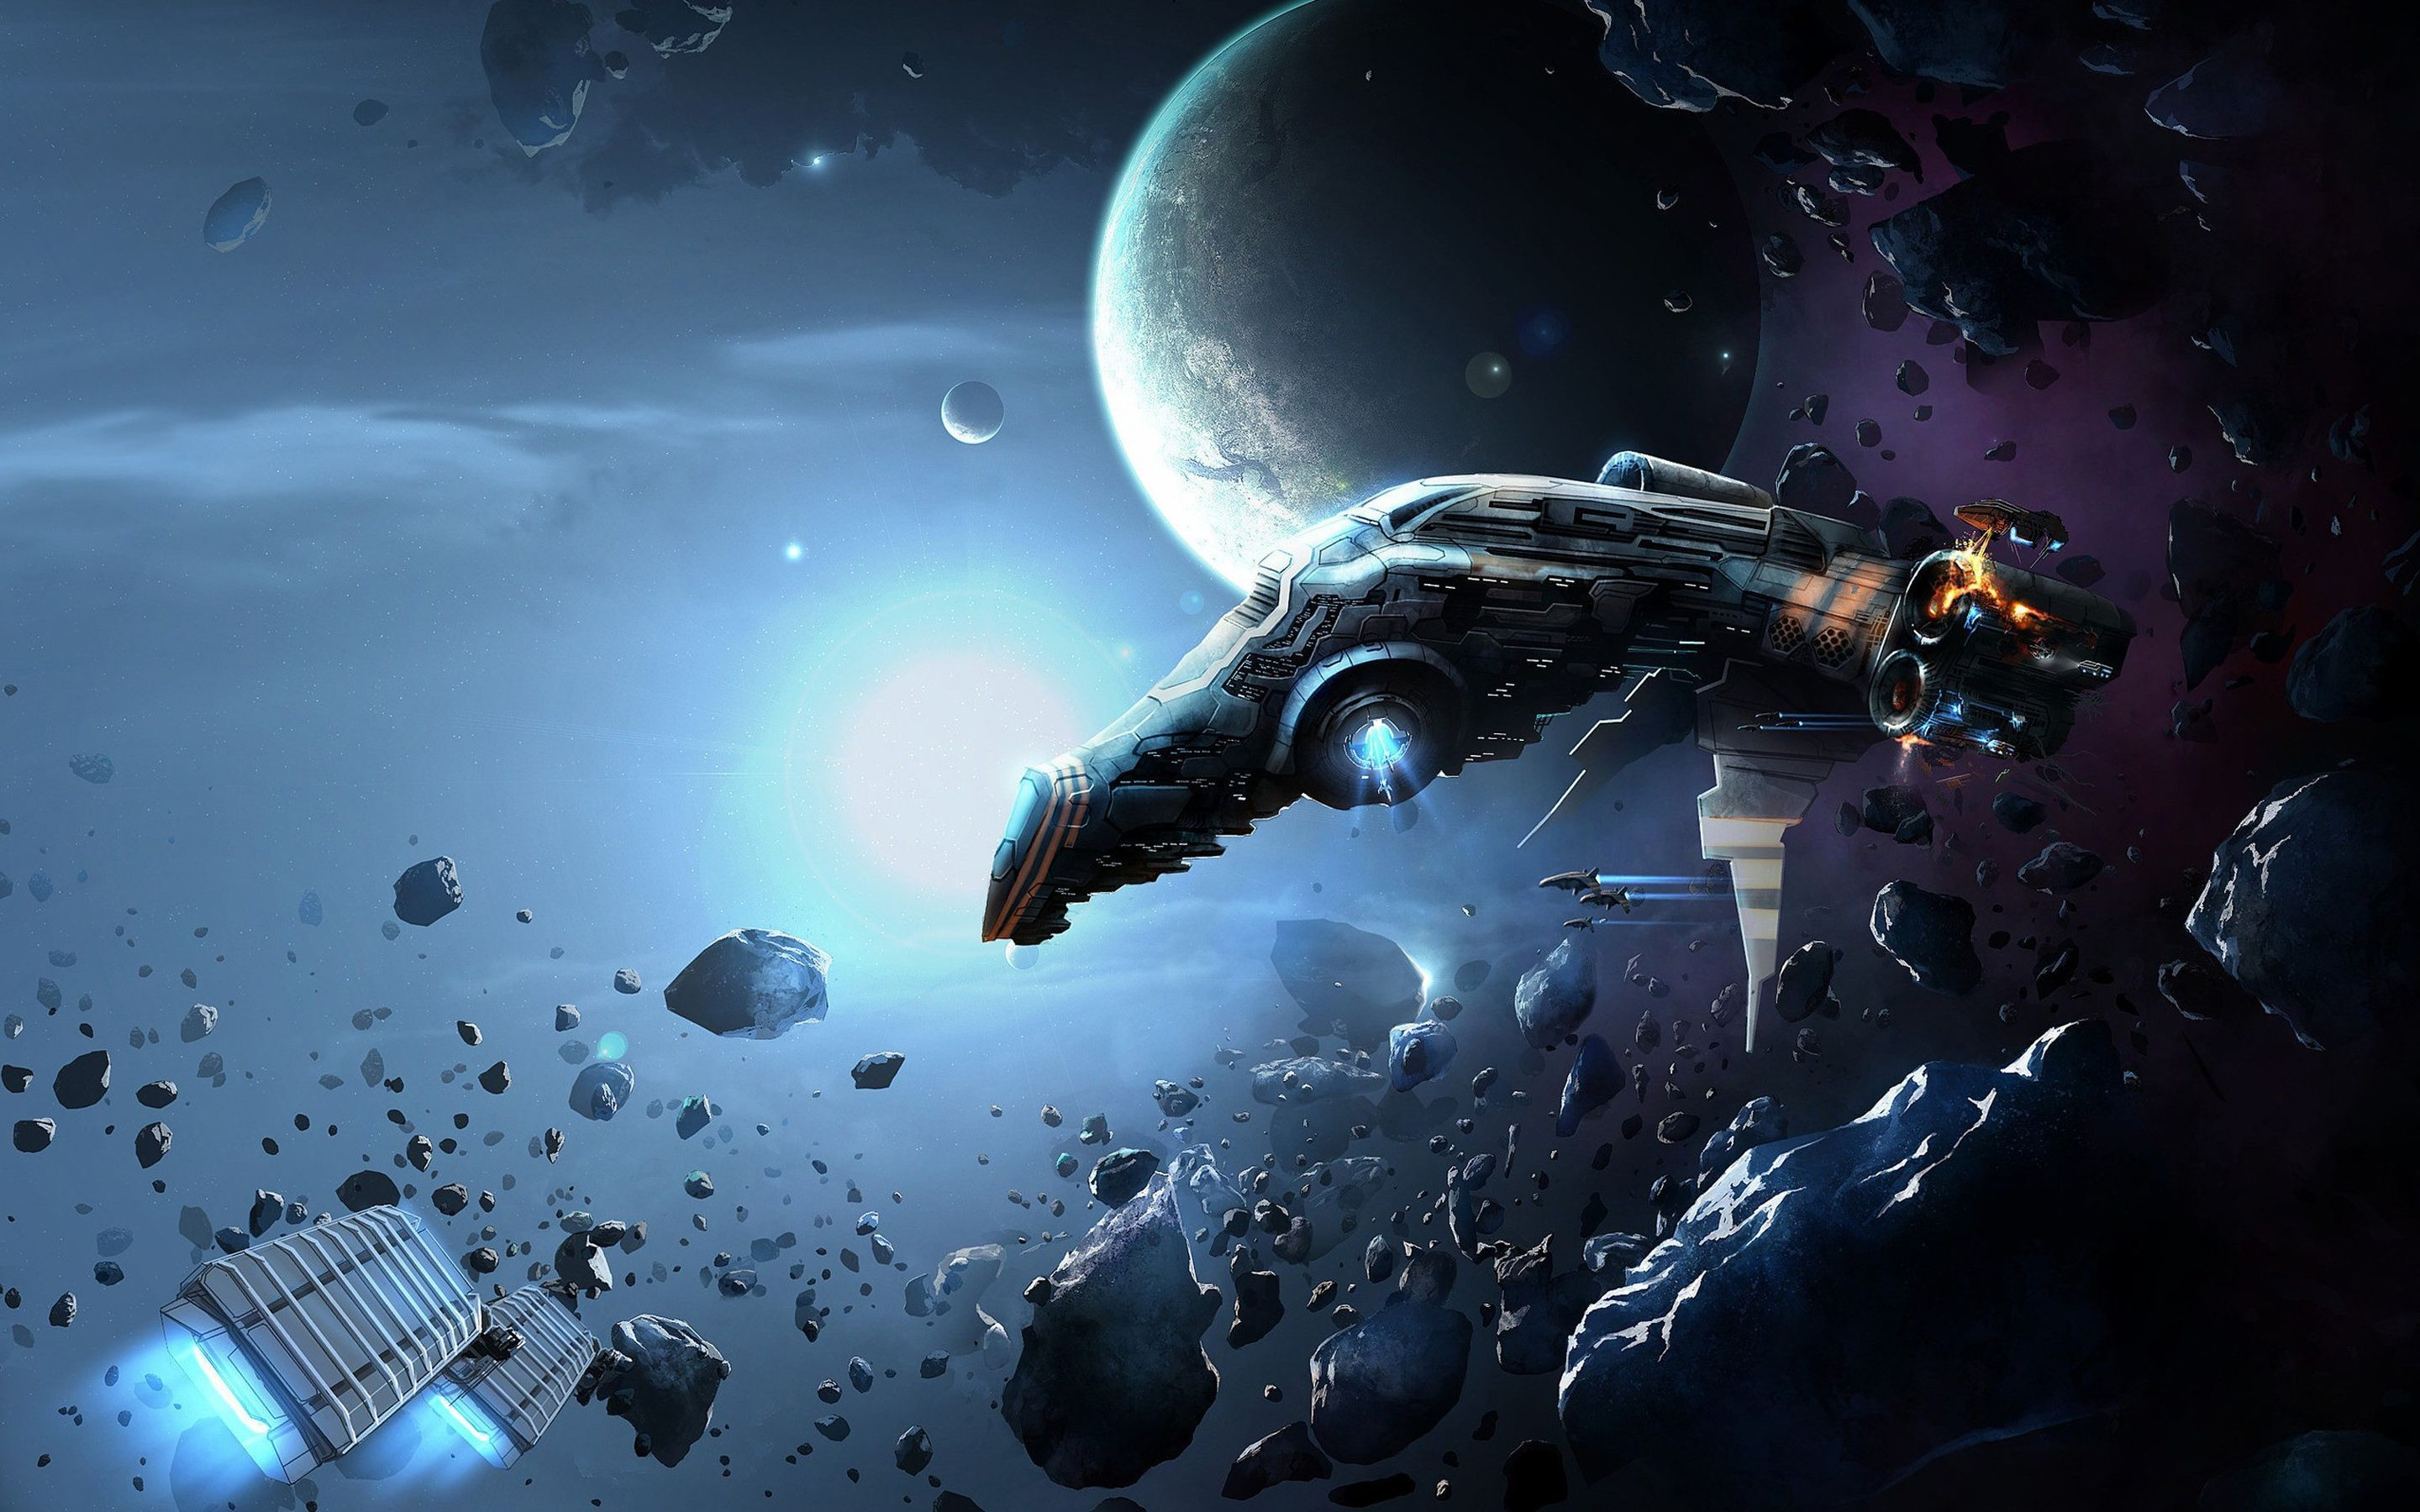 Gaming-PC-wallpaper-Space-HD-free-wallpapers-wall-